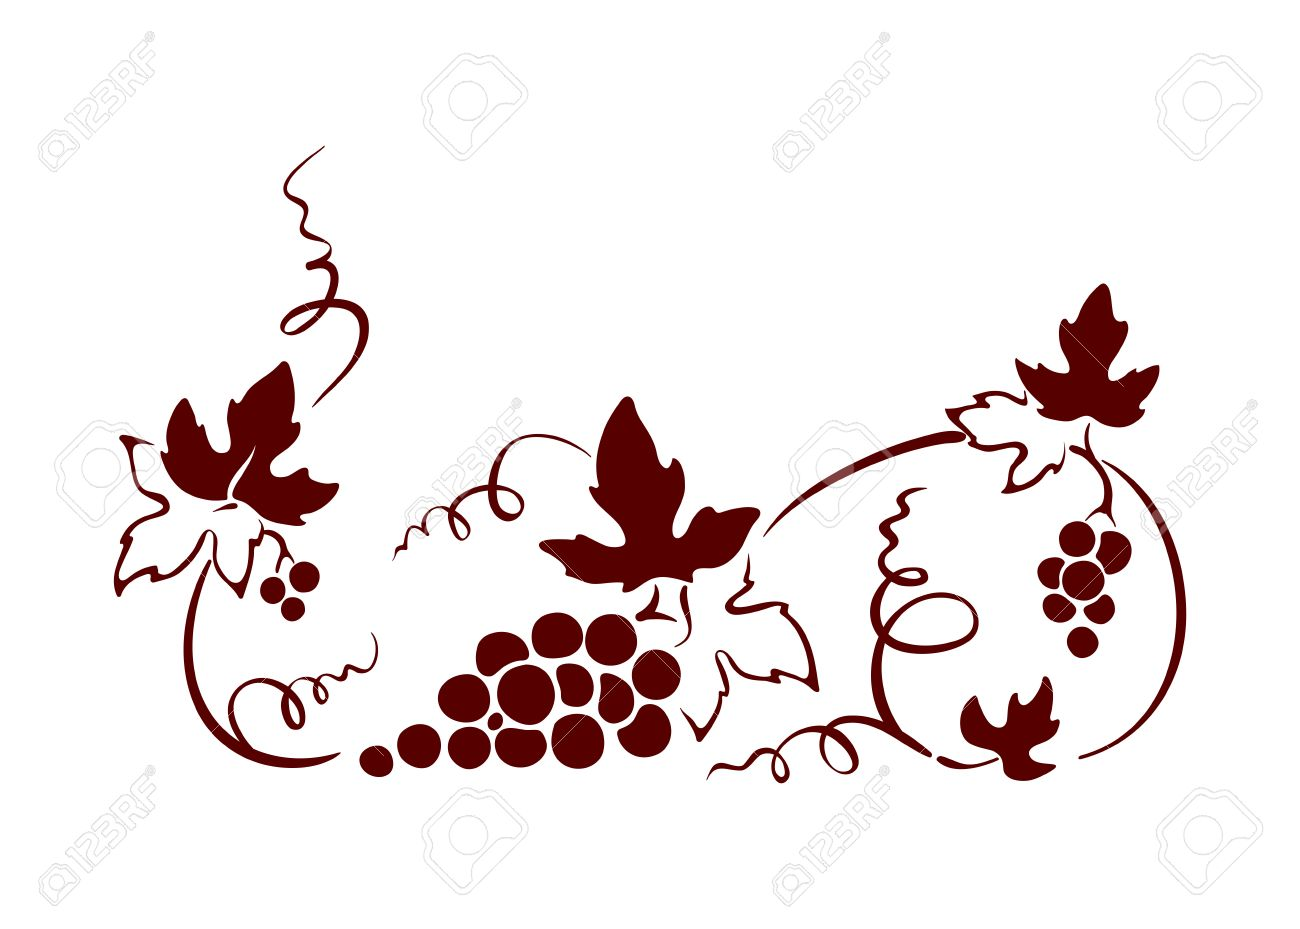 design element border vine graphic illustration royalty free rh 123rf com vine vector art vine vector frame